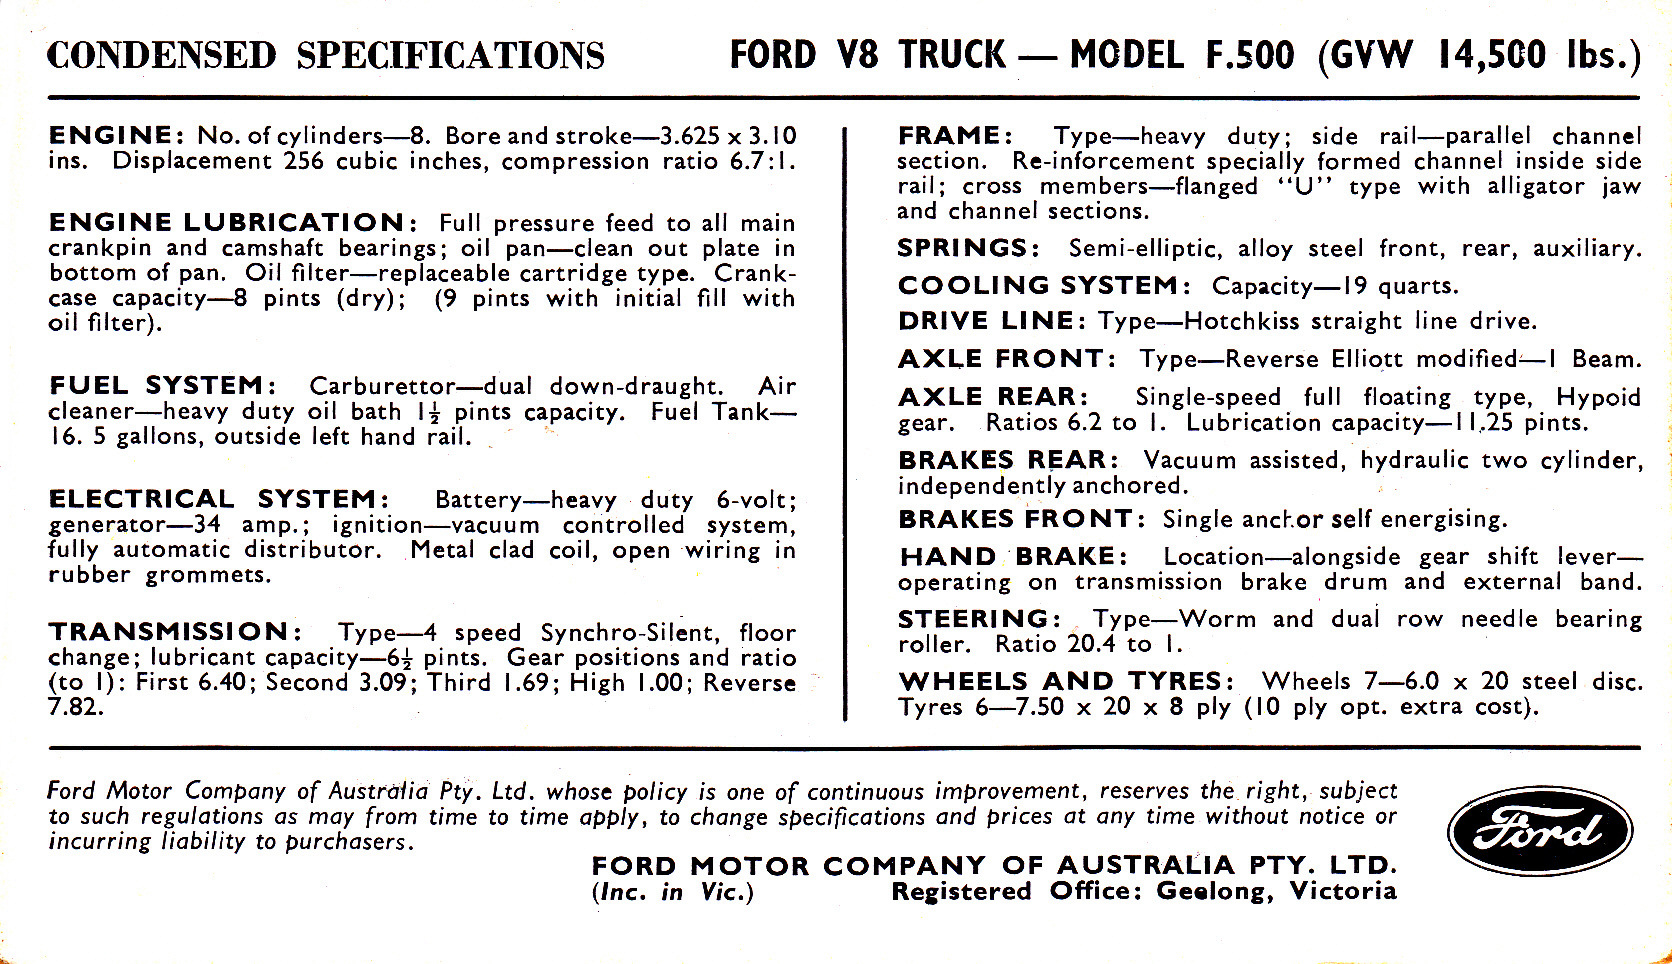 1955 Ford Electrical System F500 Wiring Diagram Freighter Postcard 1672x964